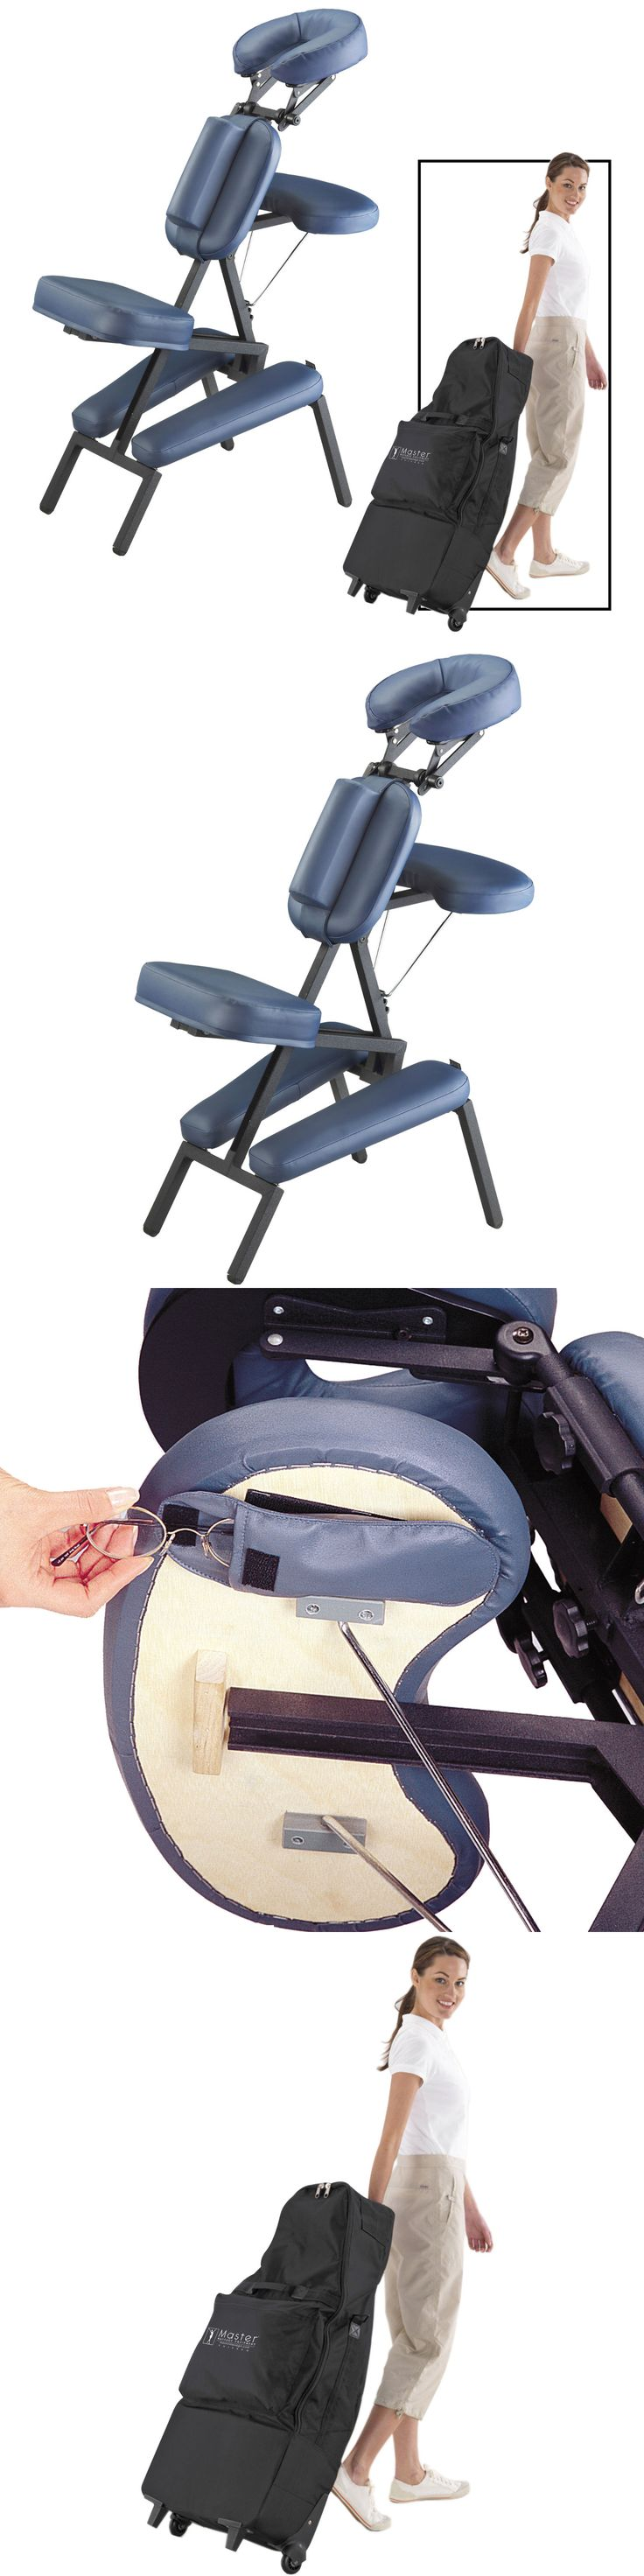 574 best Massage Tables and Chairs images on Pinterest